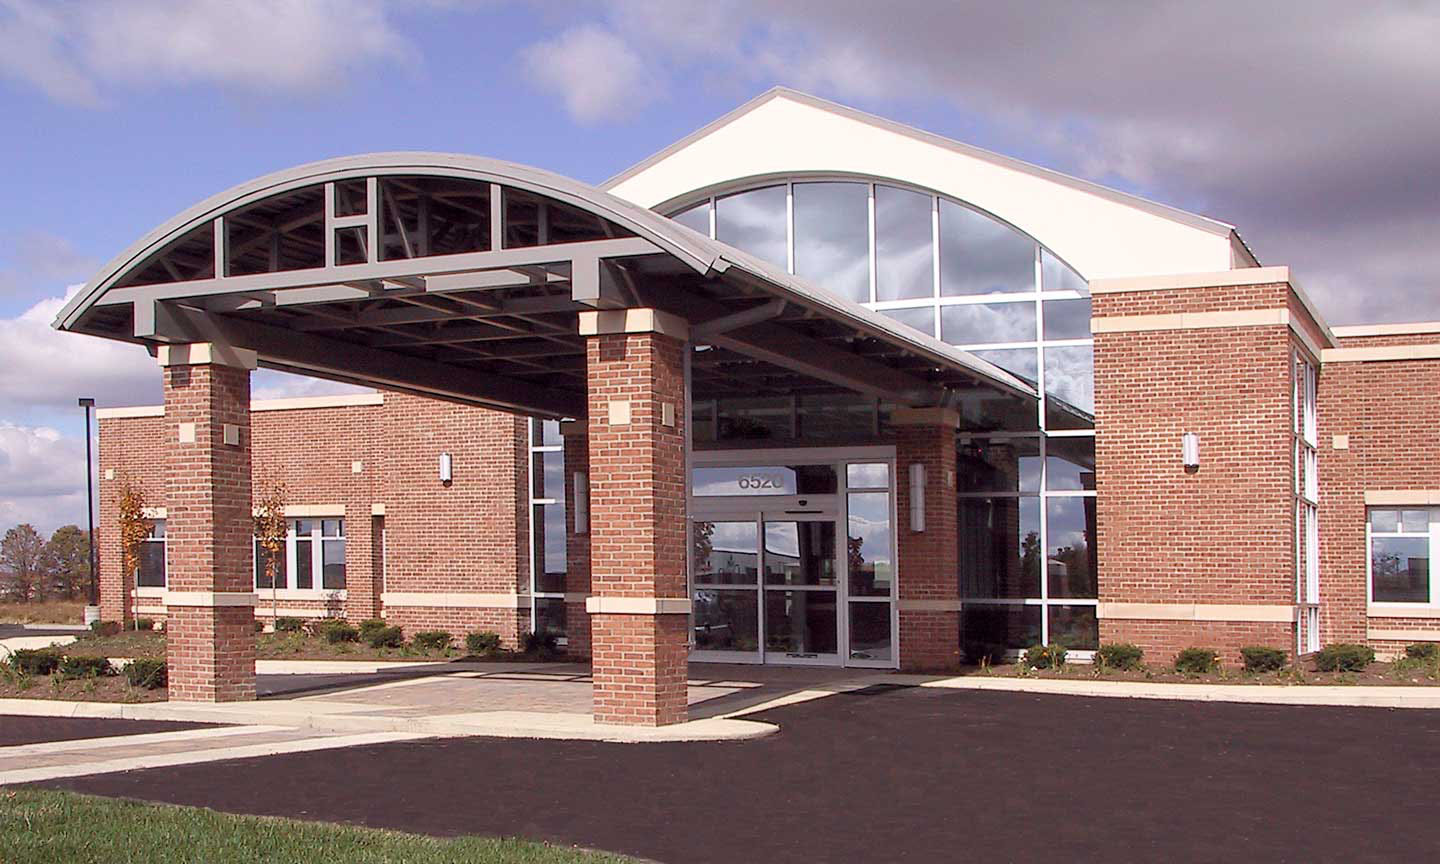 Central Ohio Surgical developments real estate